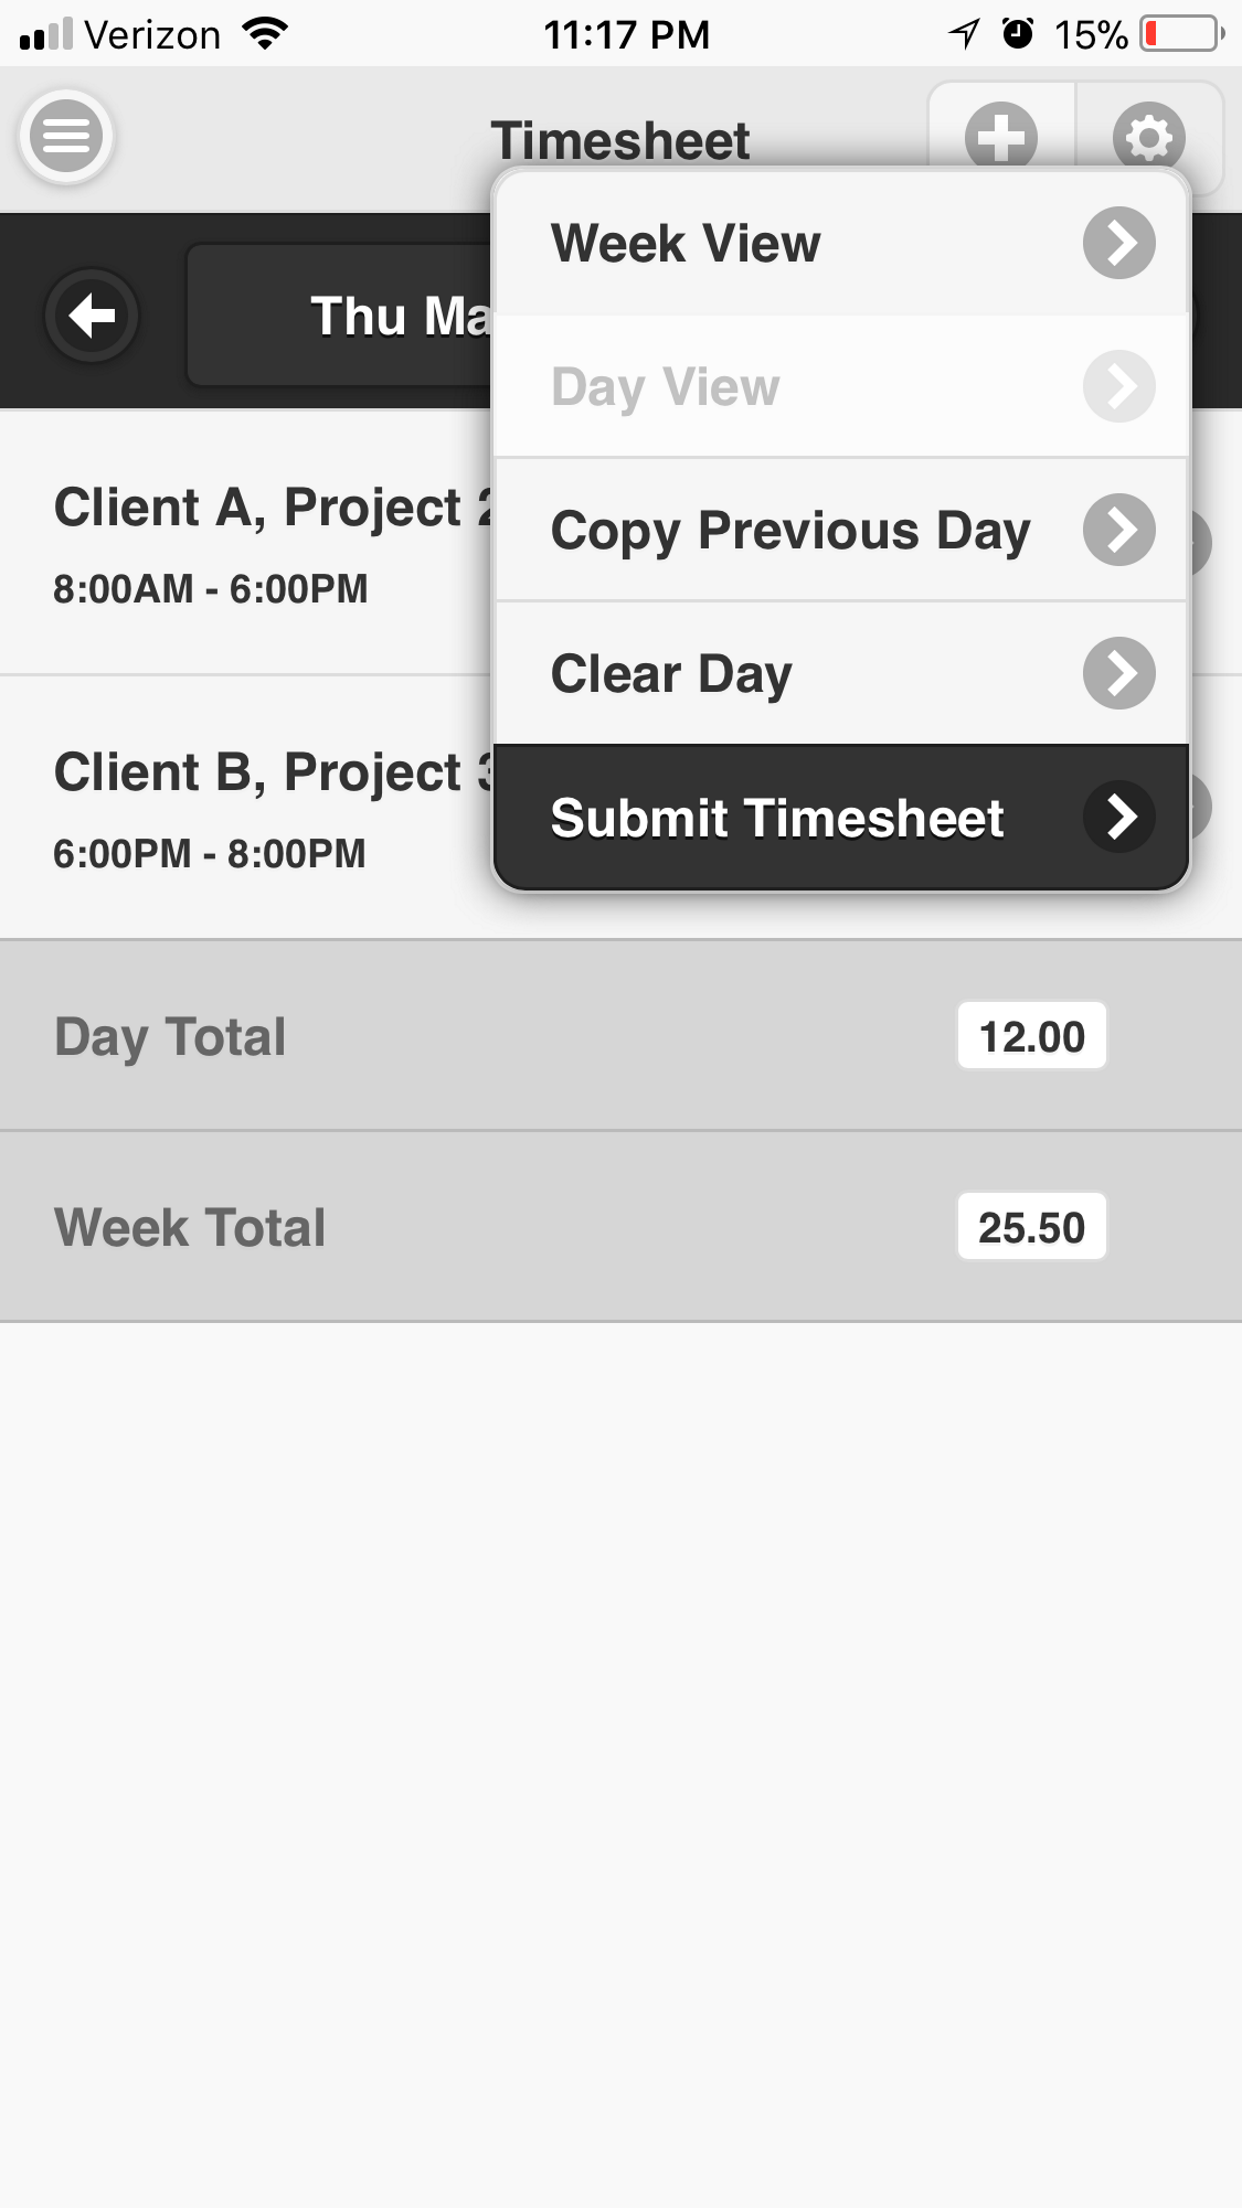 timesheet-menu-options